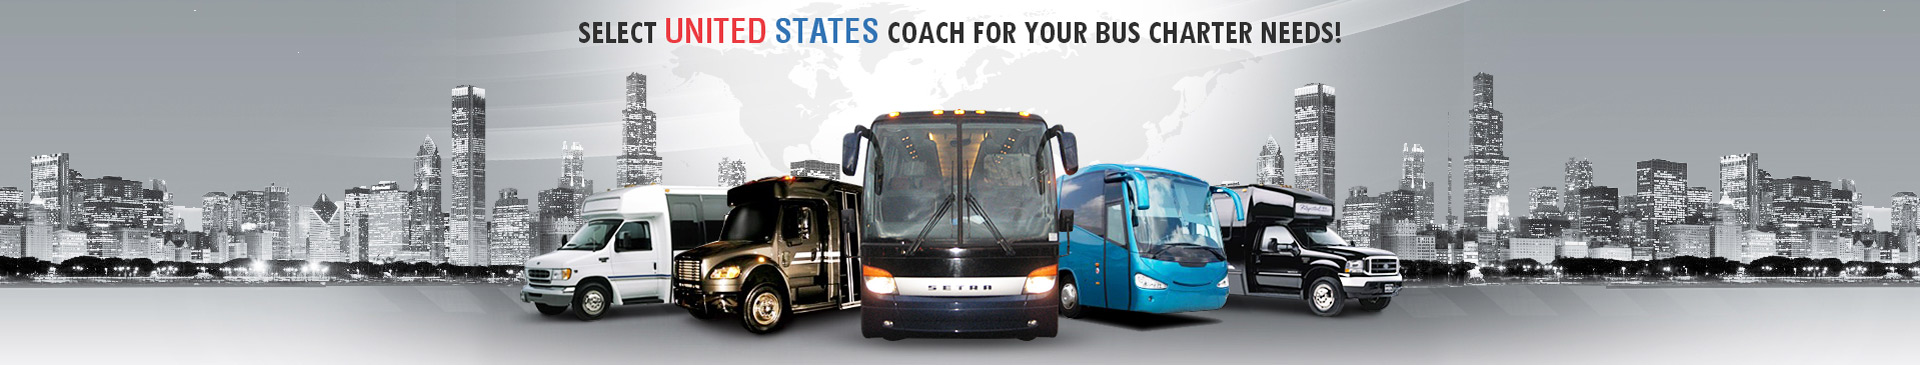 United States Coach Bus Rentals